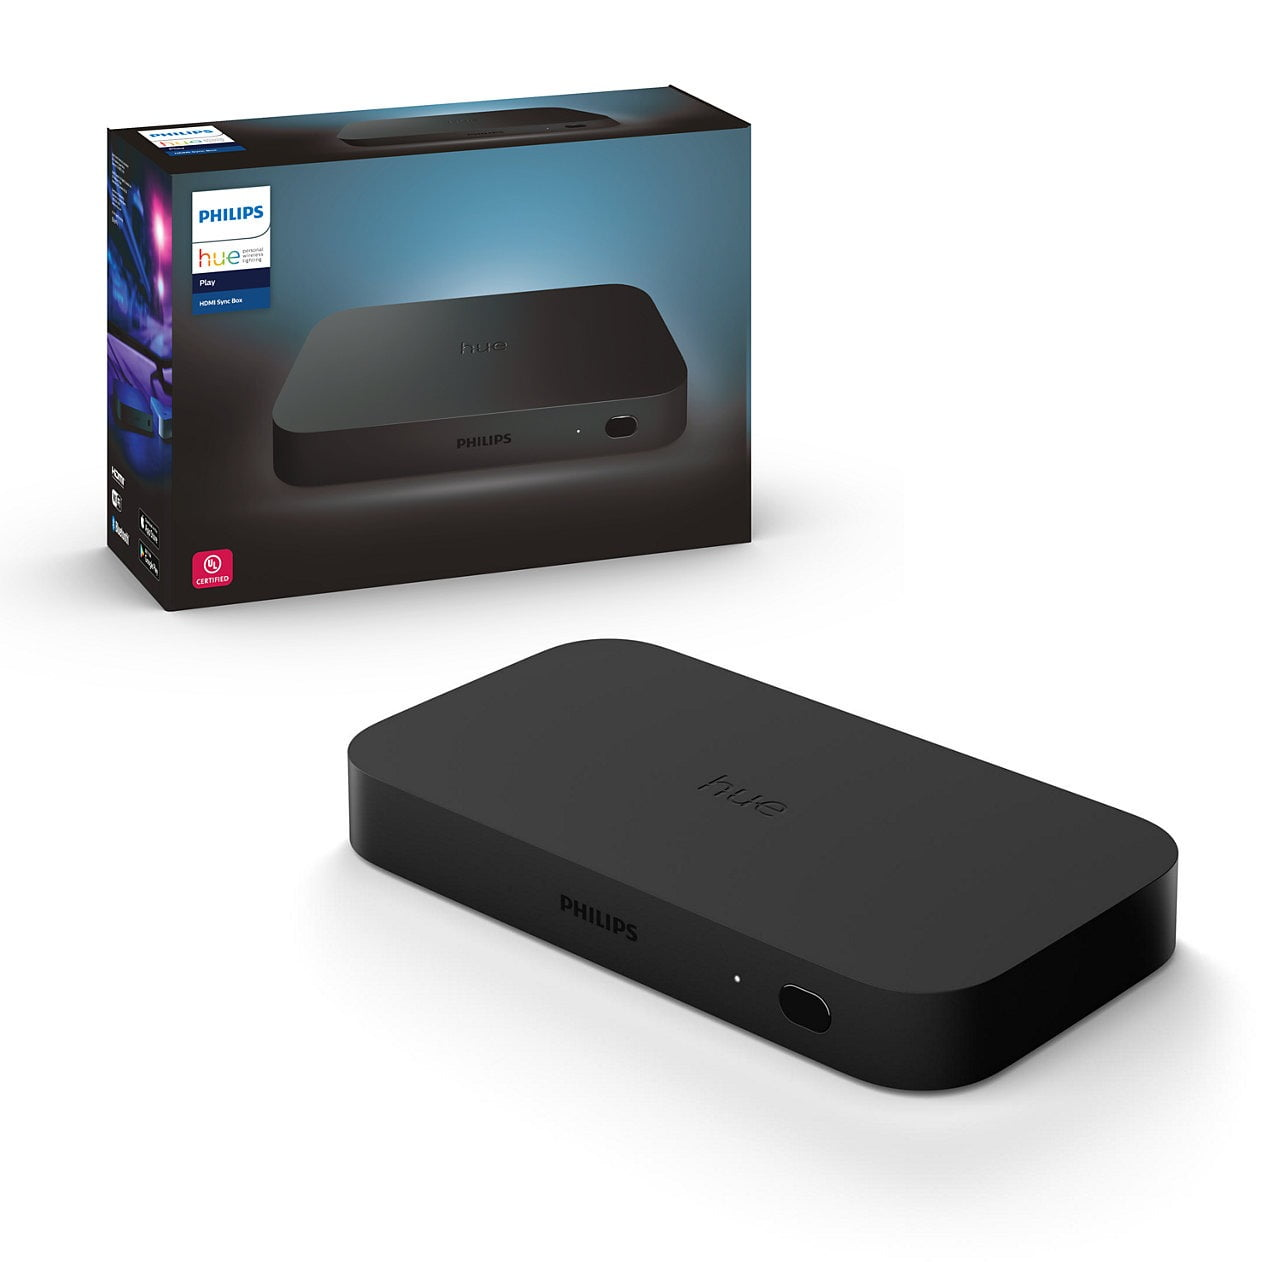 Philips Hue Play Hdmi Box